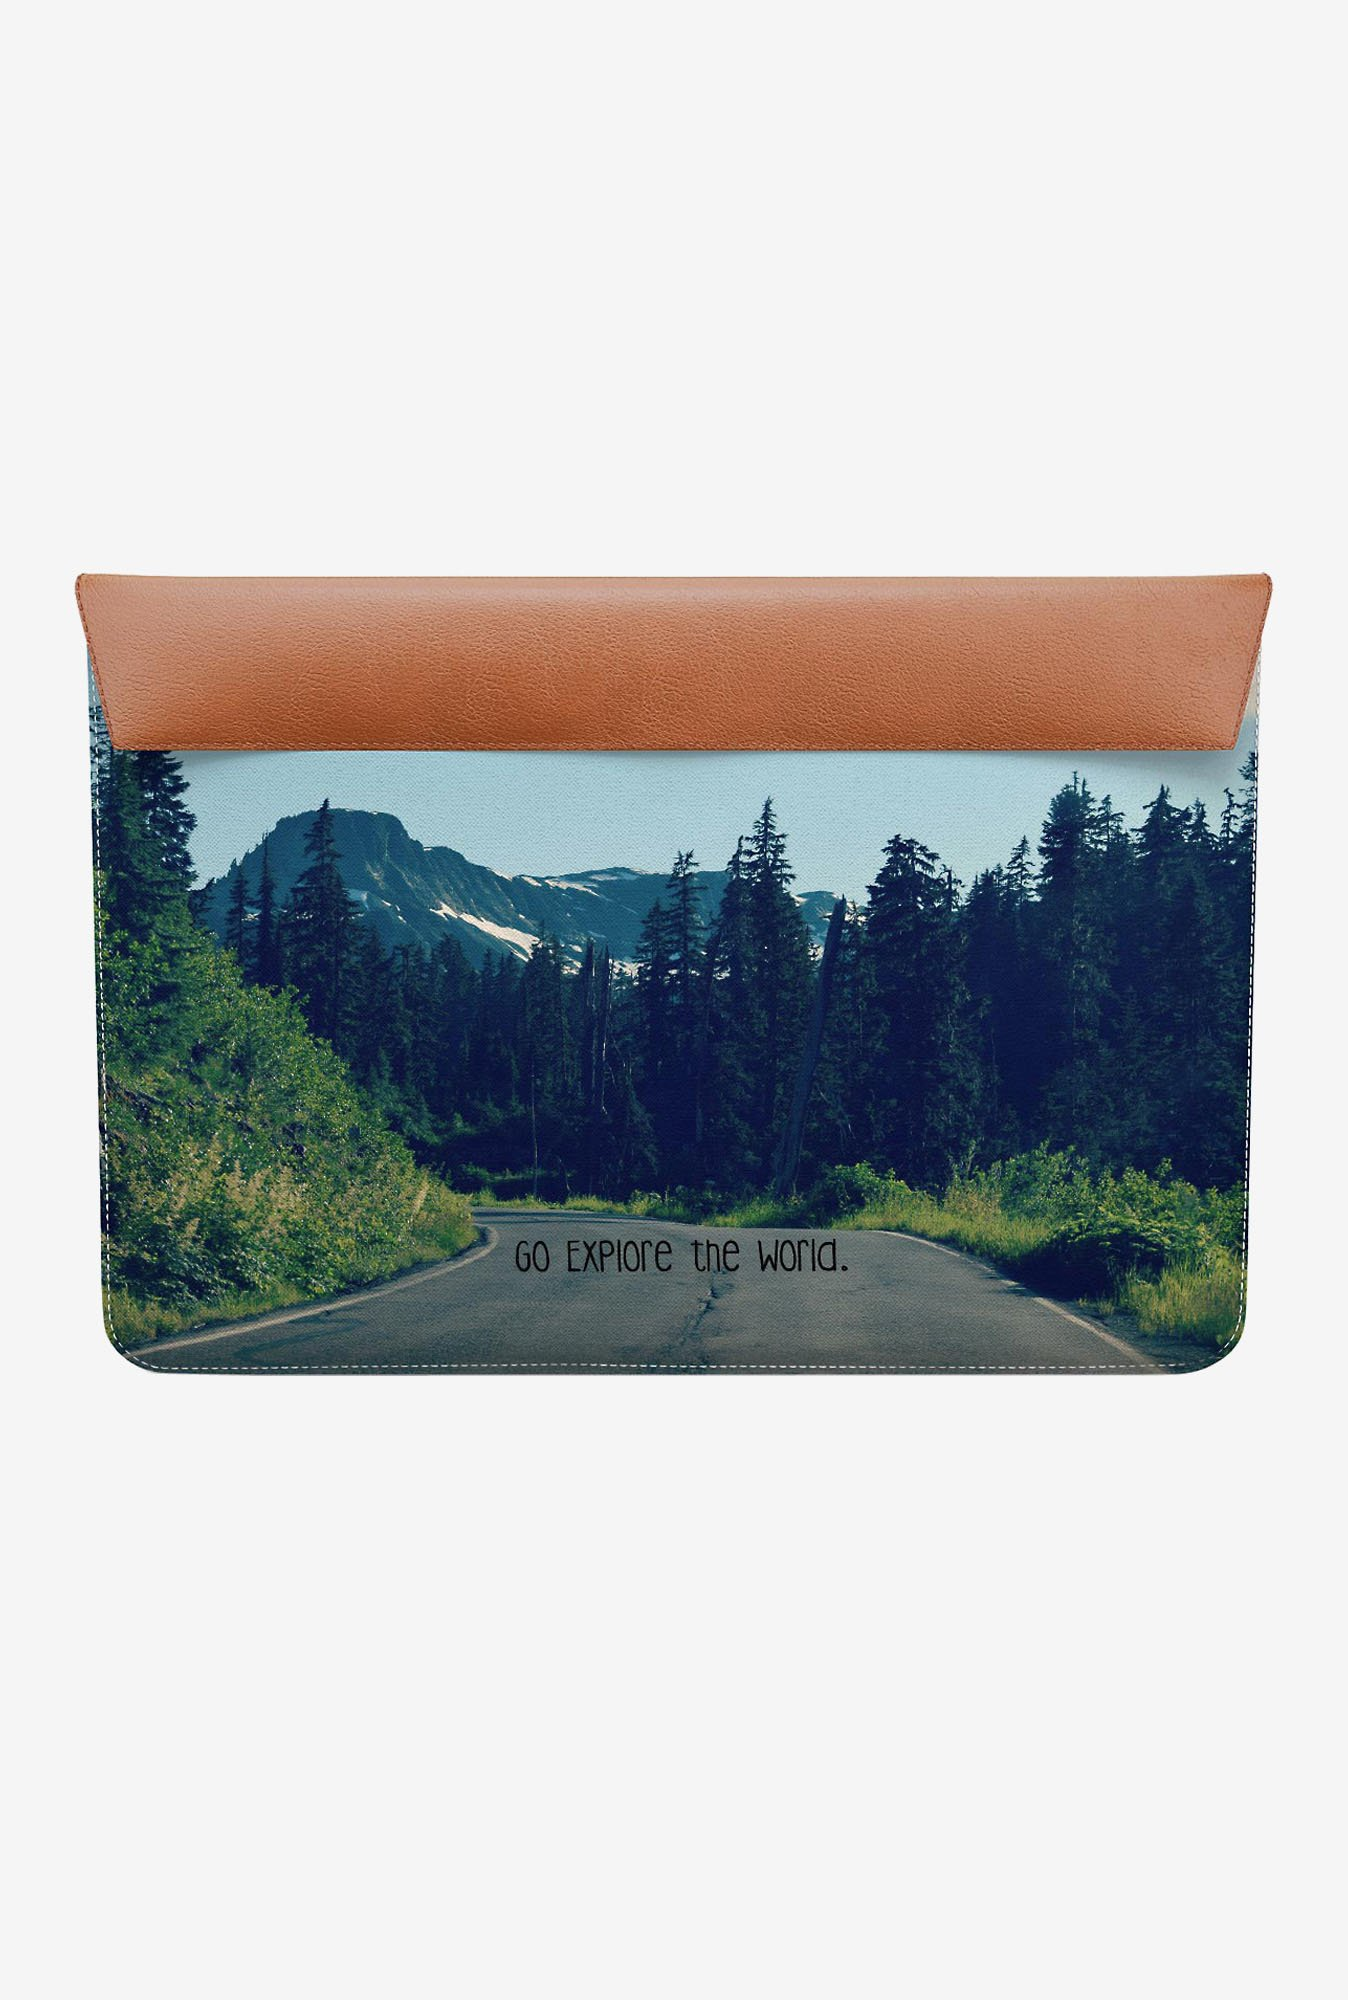 DailyObjects Explore World MacBook Air 13 Envelope Sleeve